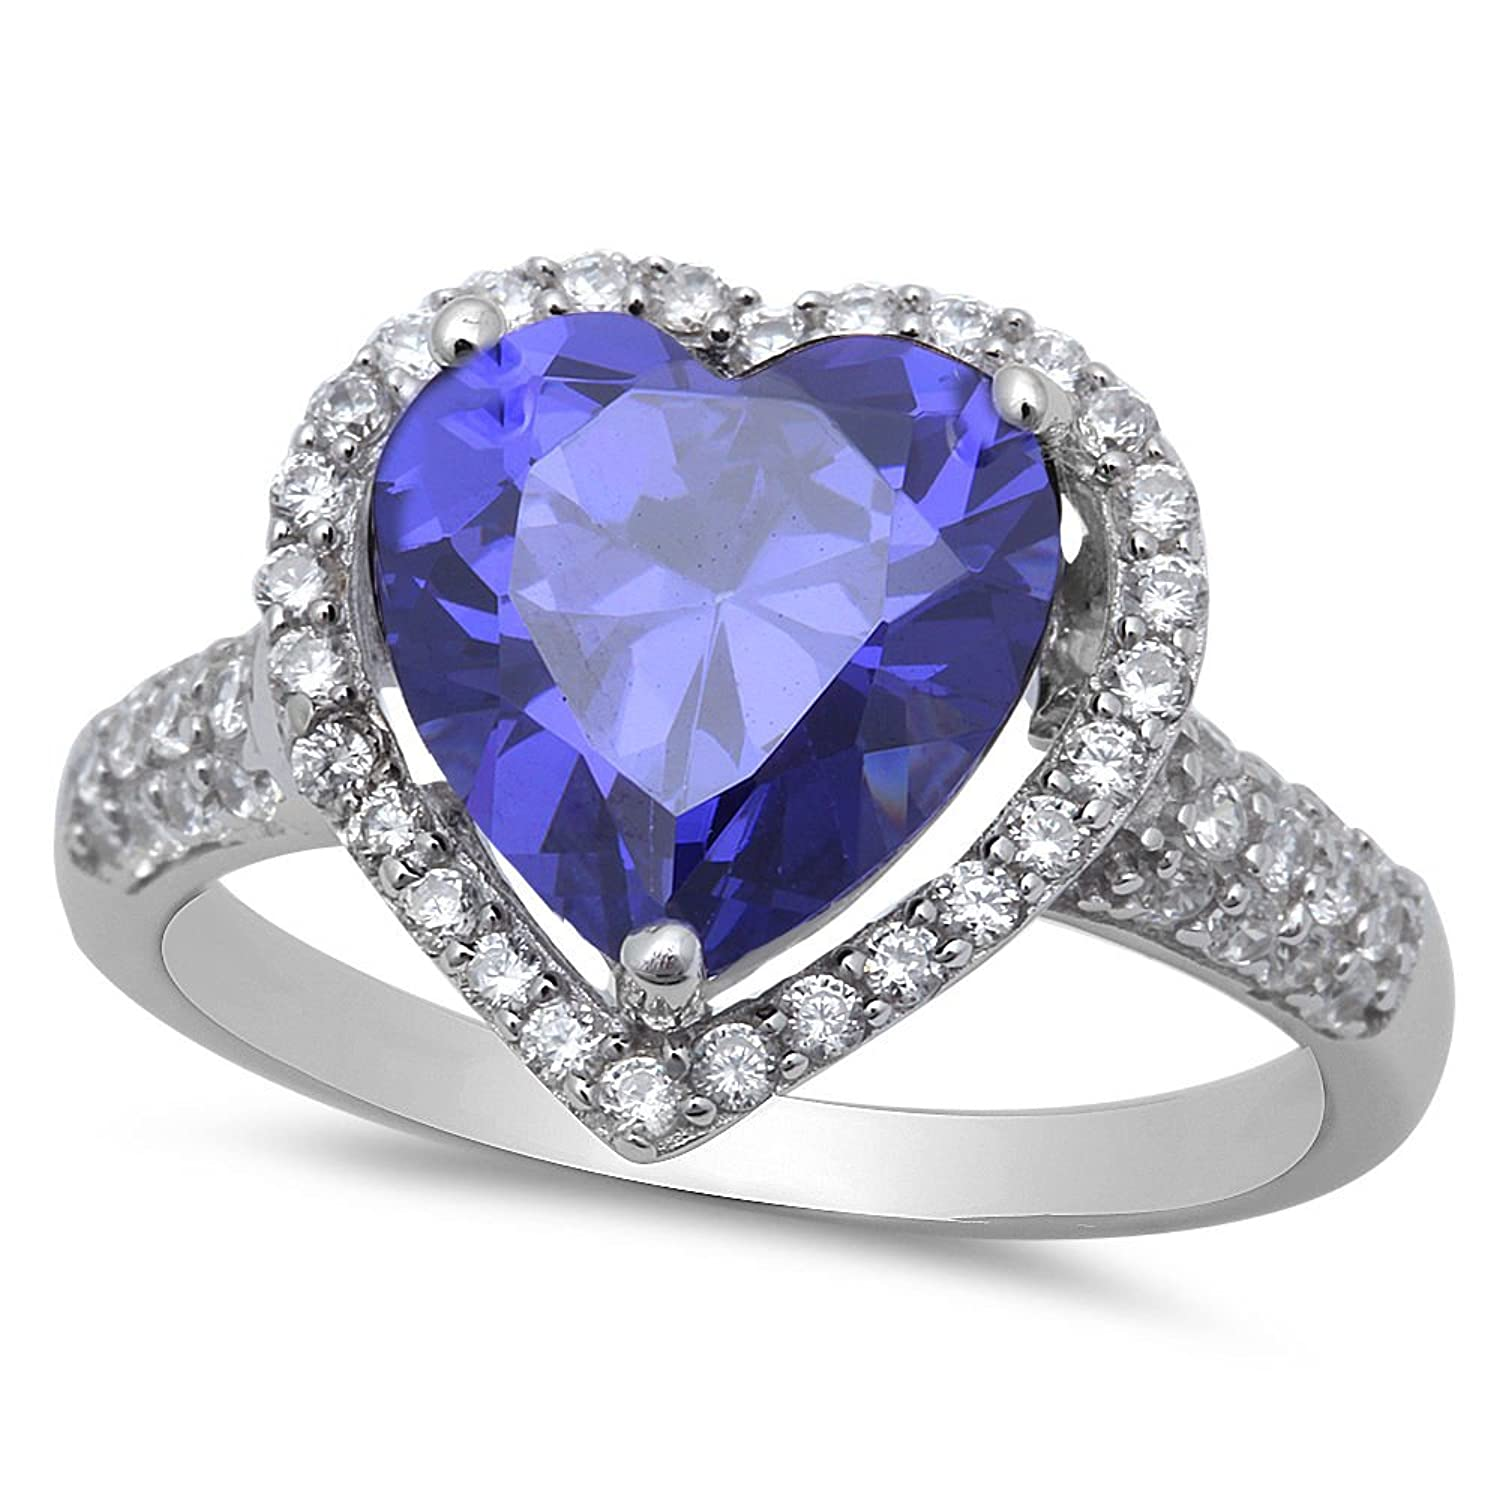 Simulated Simulated Tanzanite & Cubic Zirconia Heart Shaped .925 Sterling Silver Ring Sizes 5-10